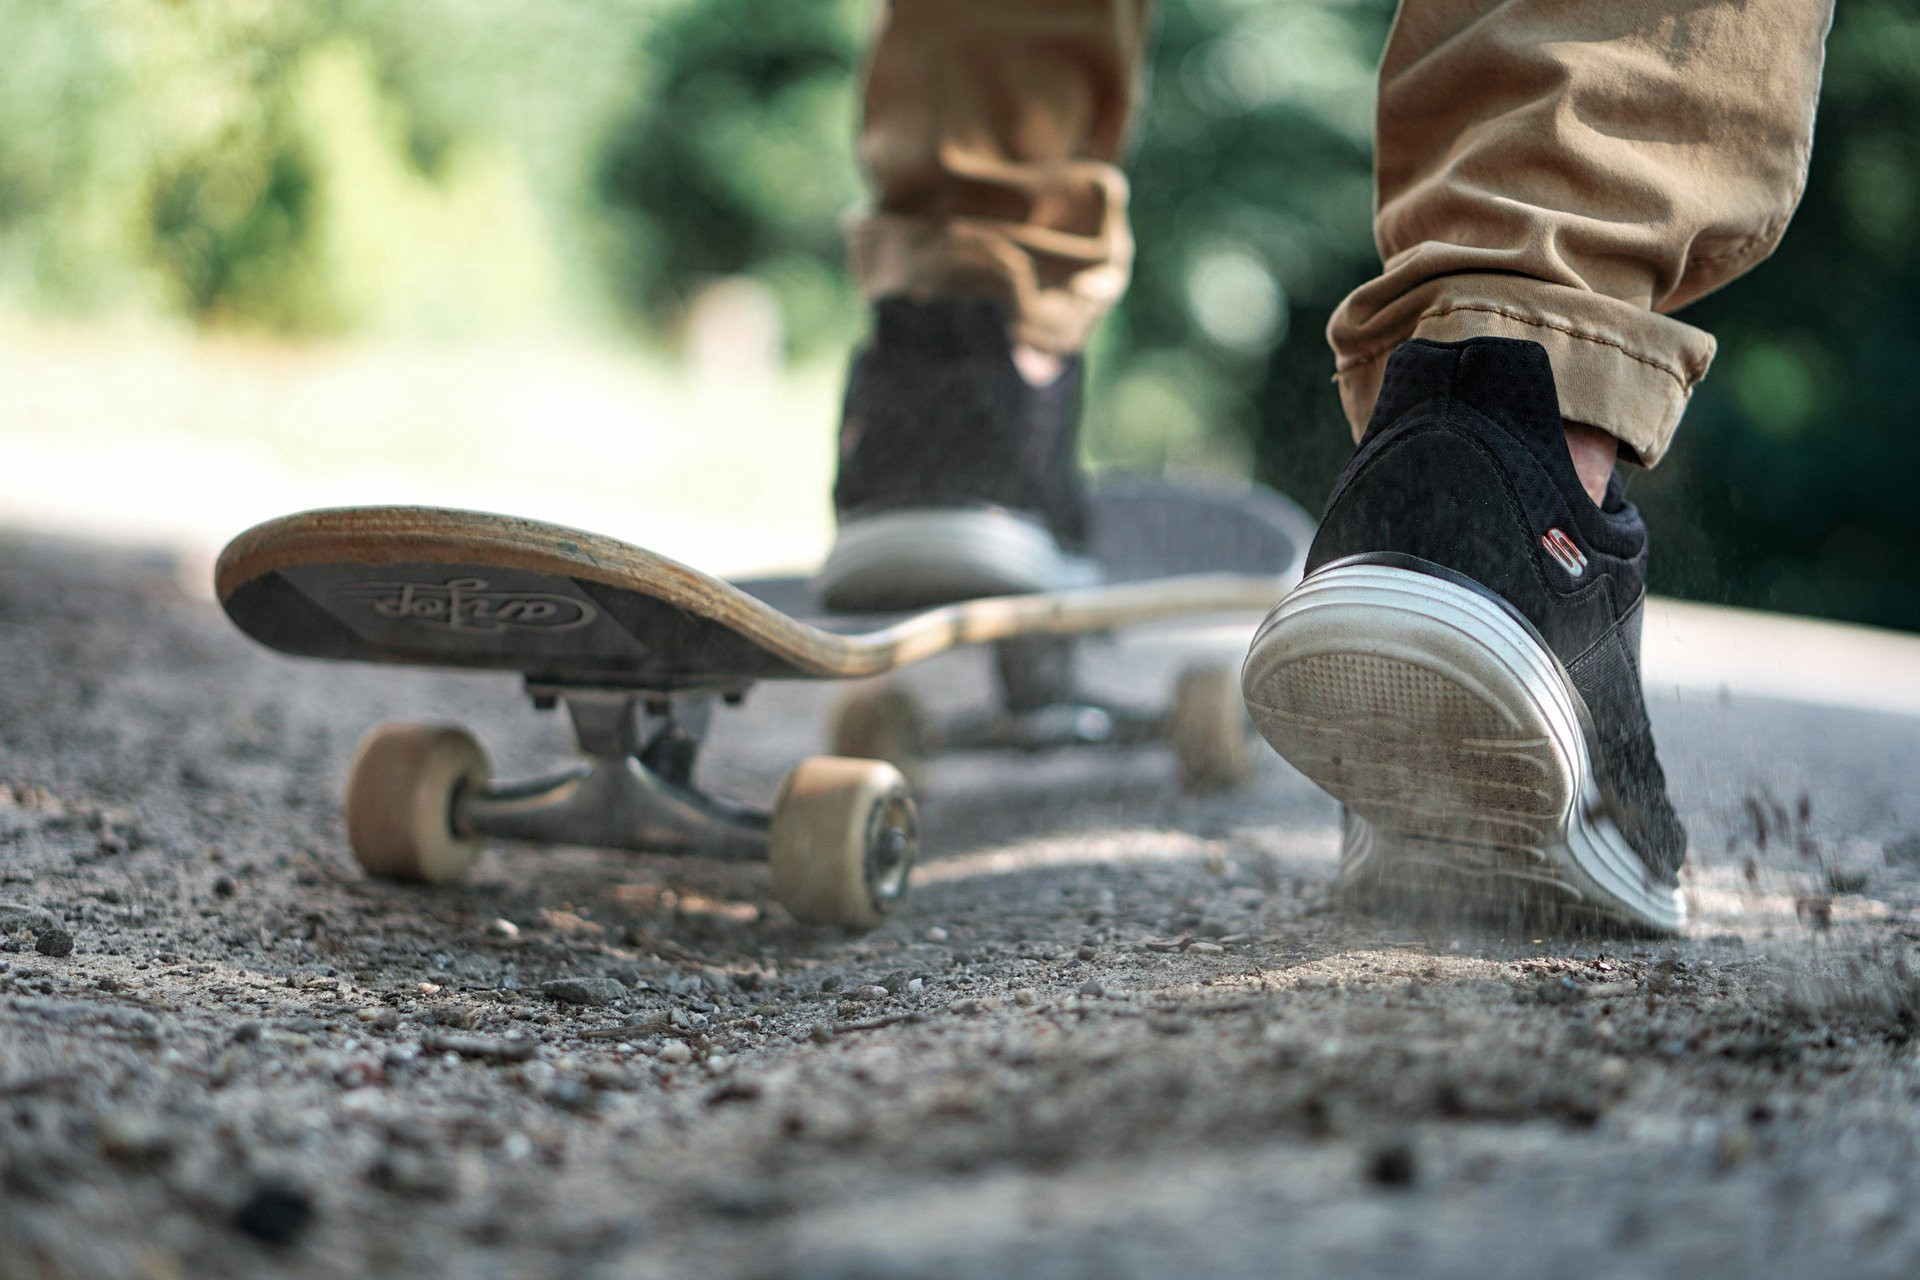 Close up of someone standing on a skateboard